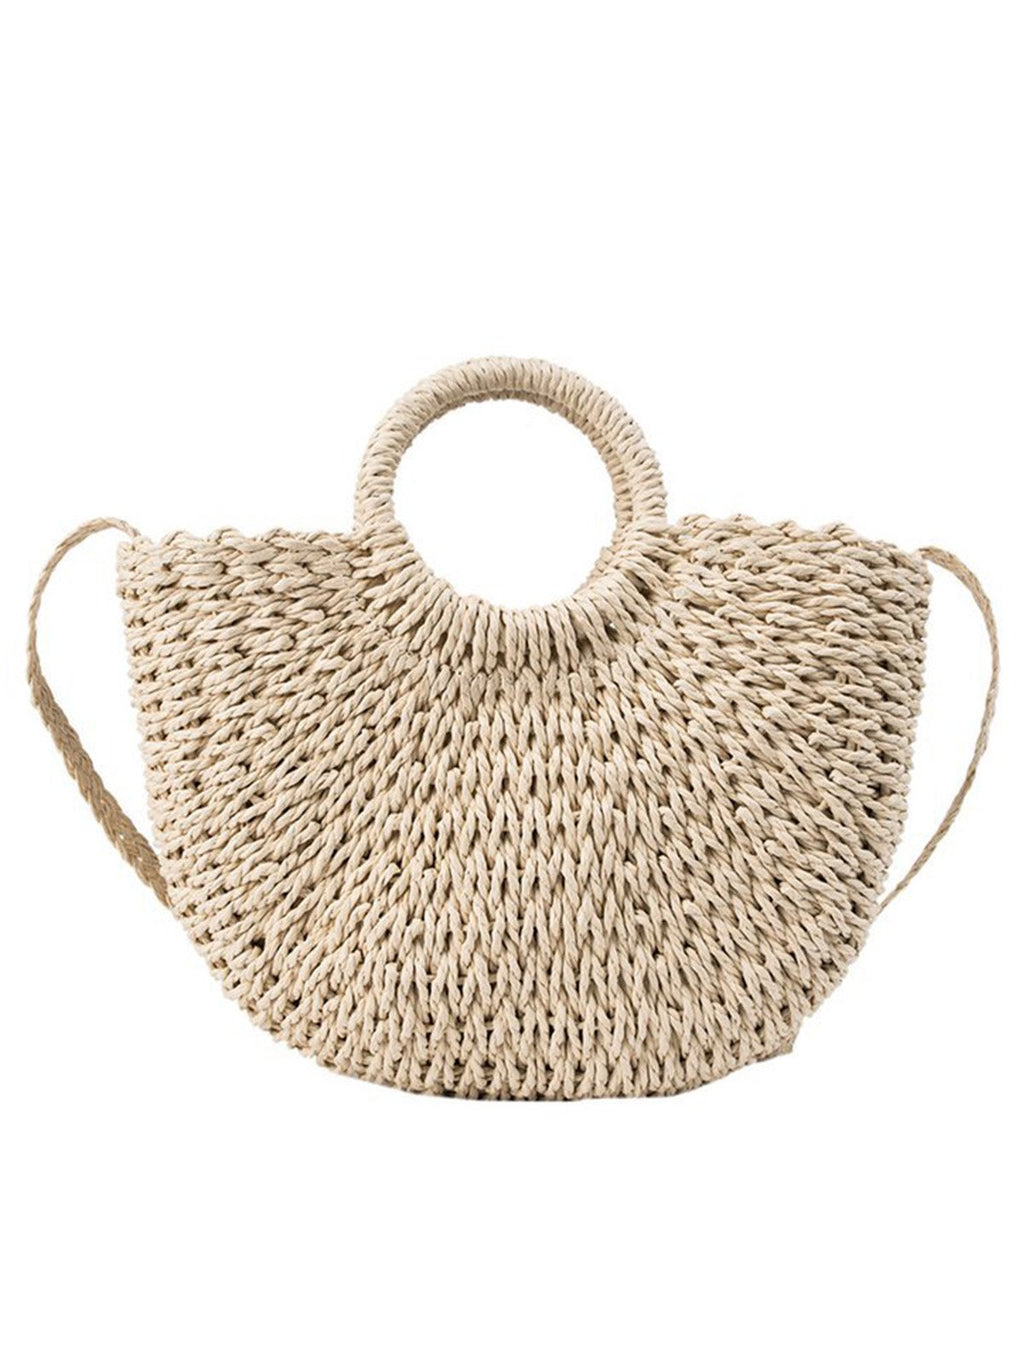 Fashion Straw Crochet Shoulder Bag